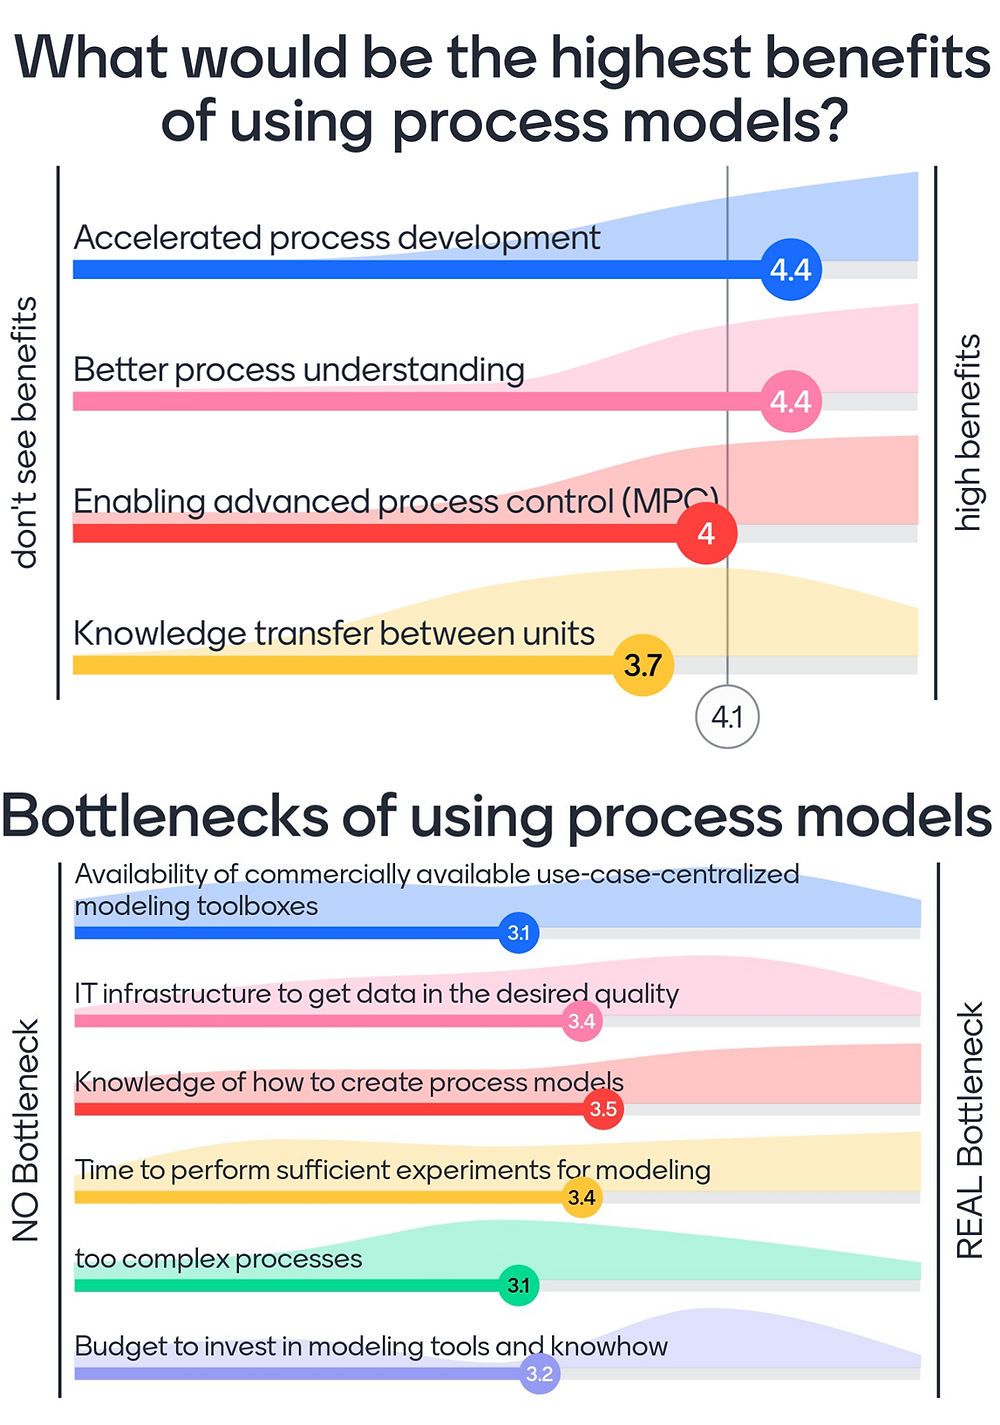 survey about process modeling for biopharma industry potential bottlenecks and benefits process knowledge budget restrictions advanced process control